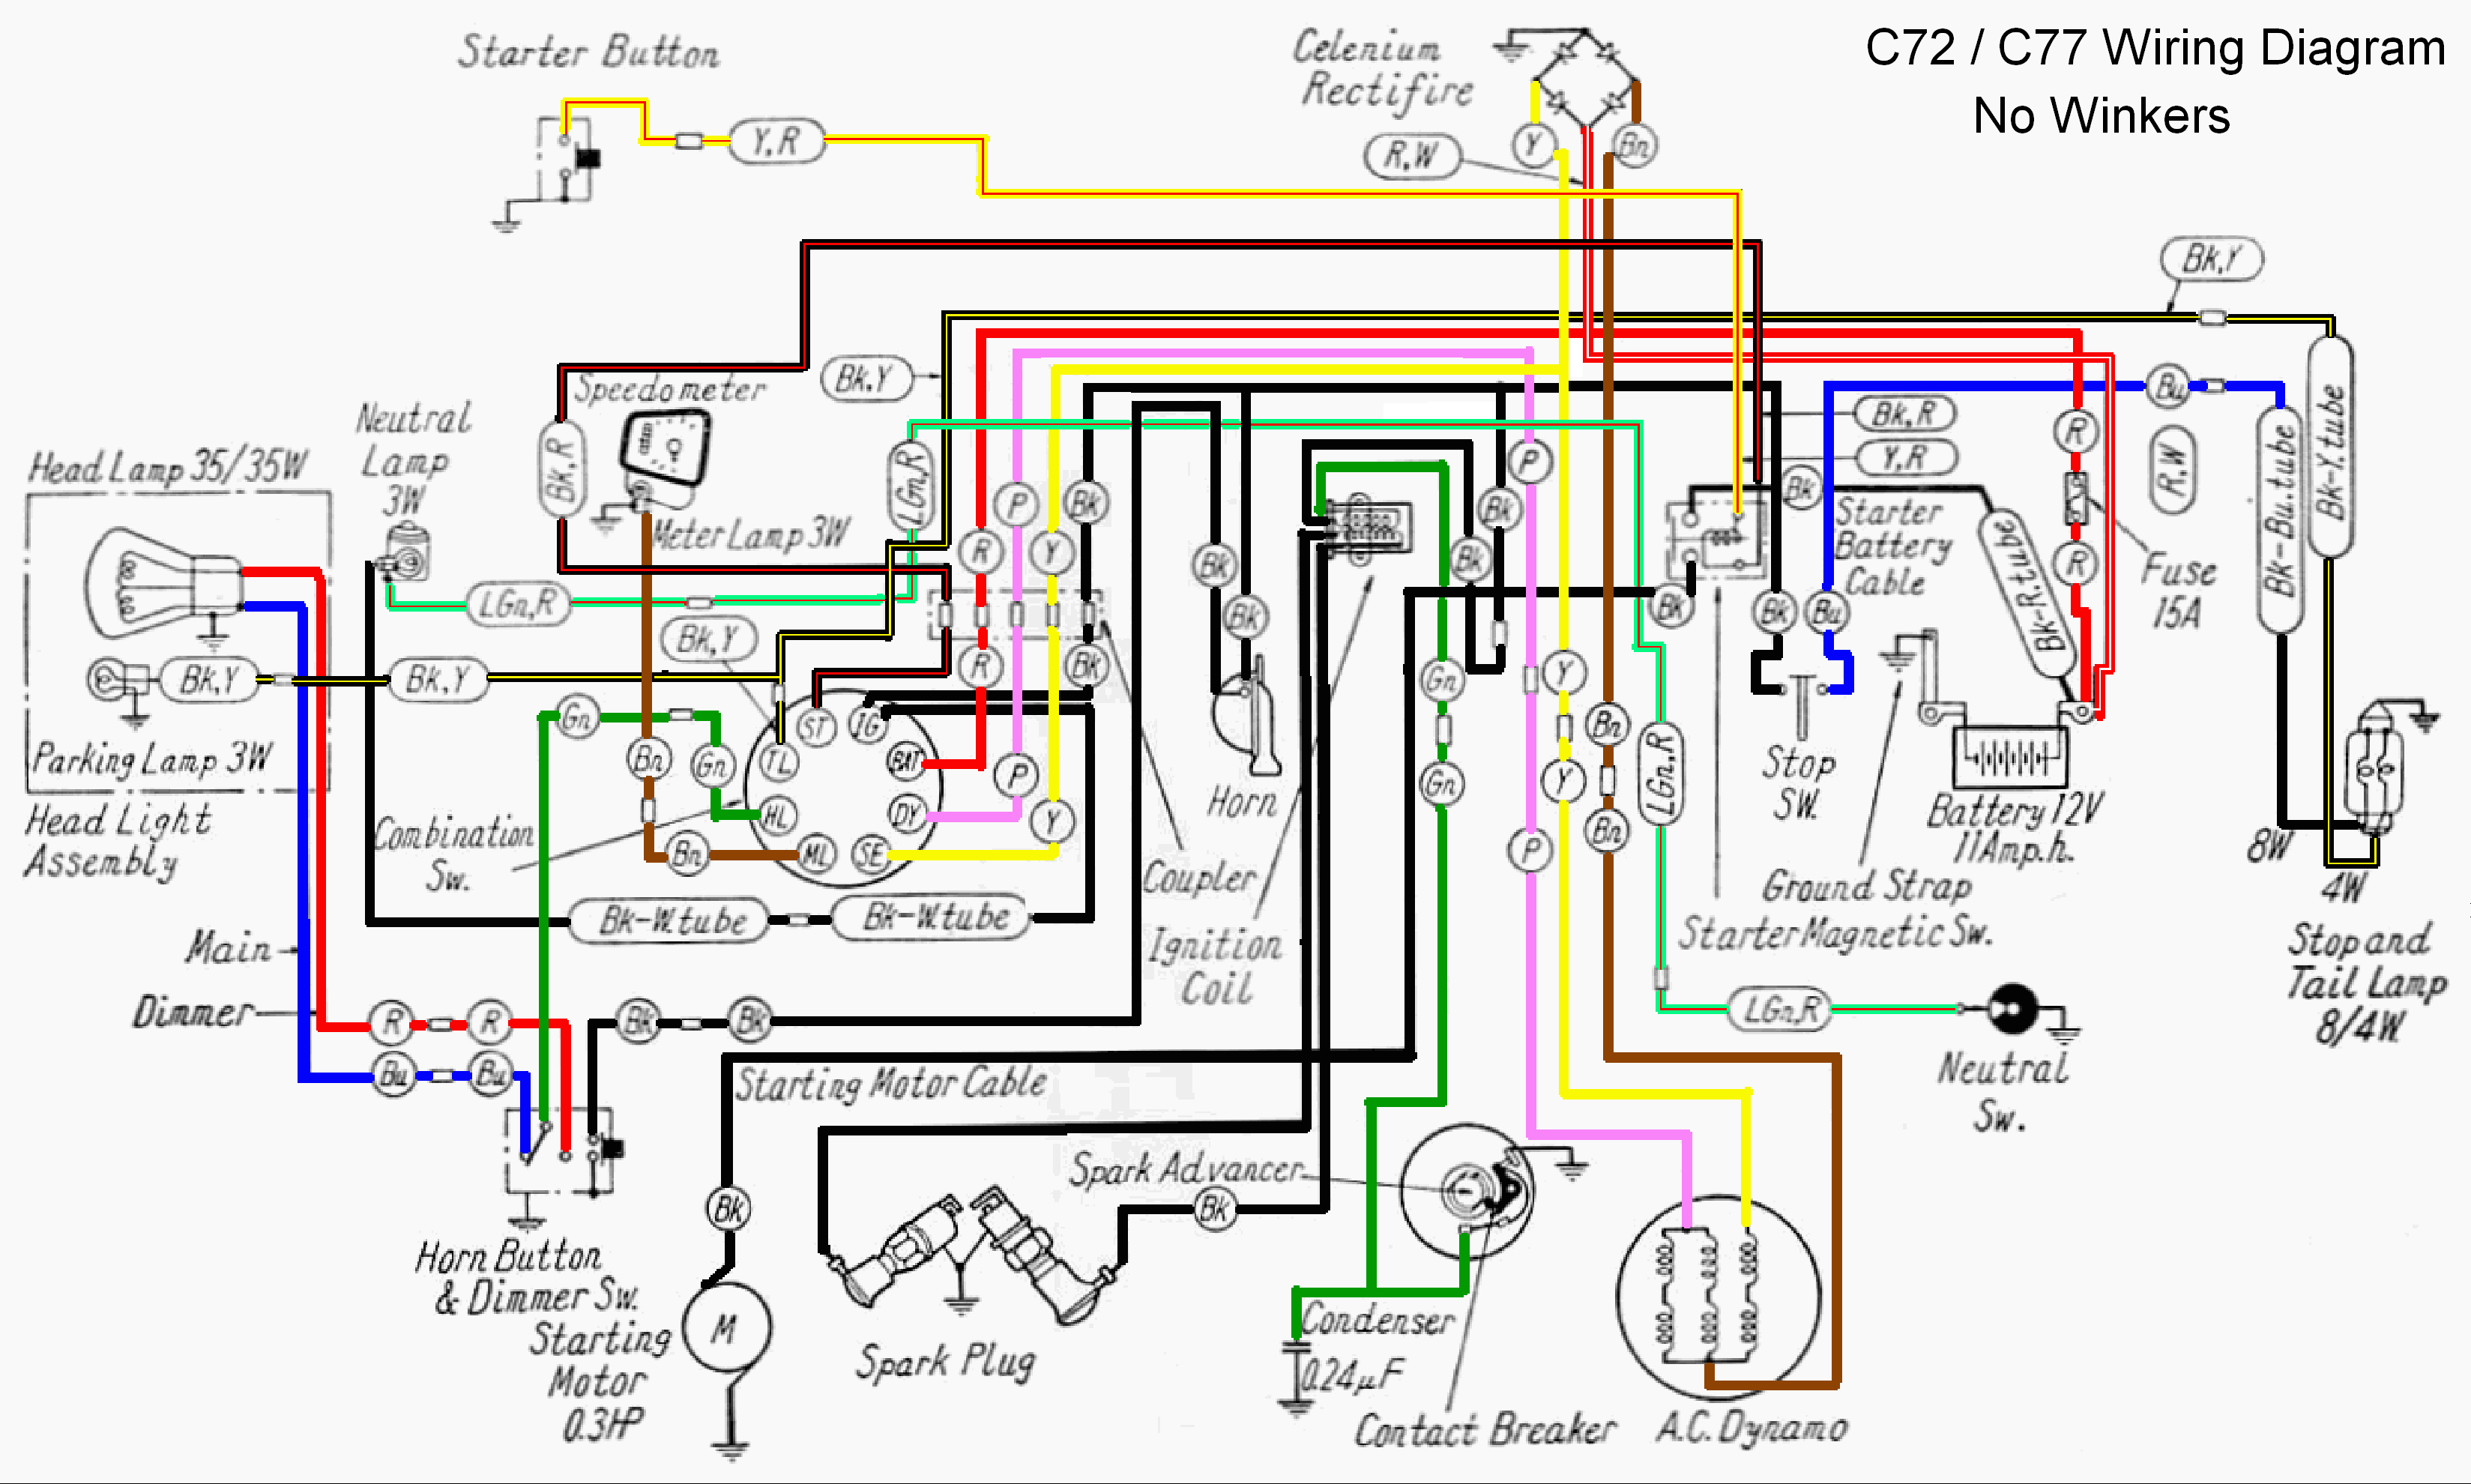 Wiring Diagram 1972 Honda Cl70 Electrical Diagrams 1982 Ct 70 Diy Enthusiasts U2022 110cc Atv